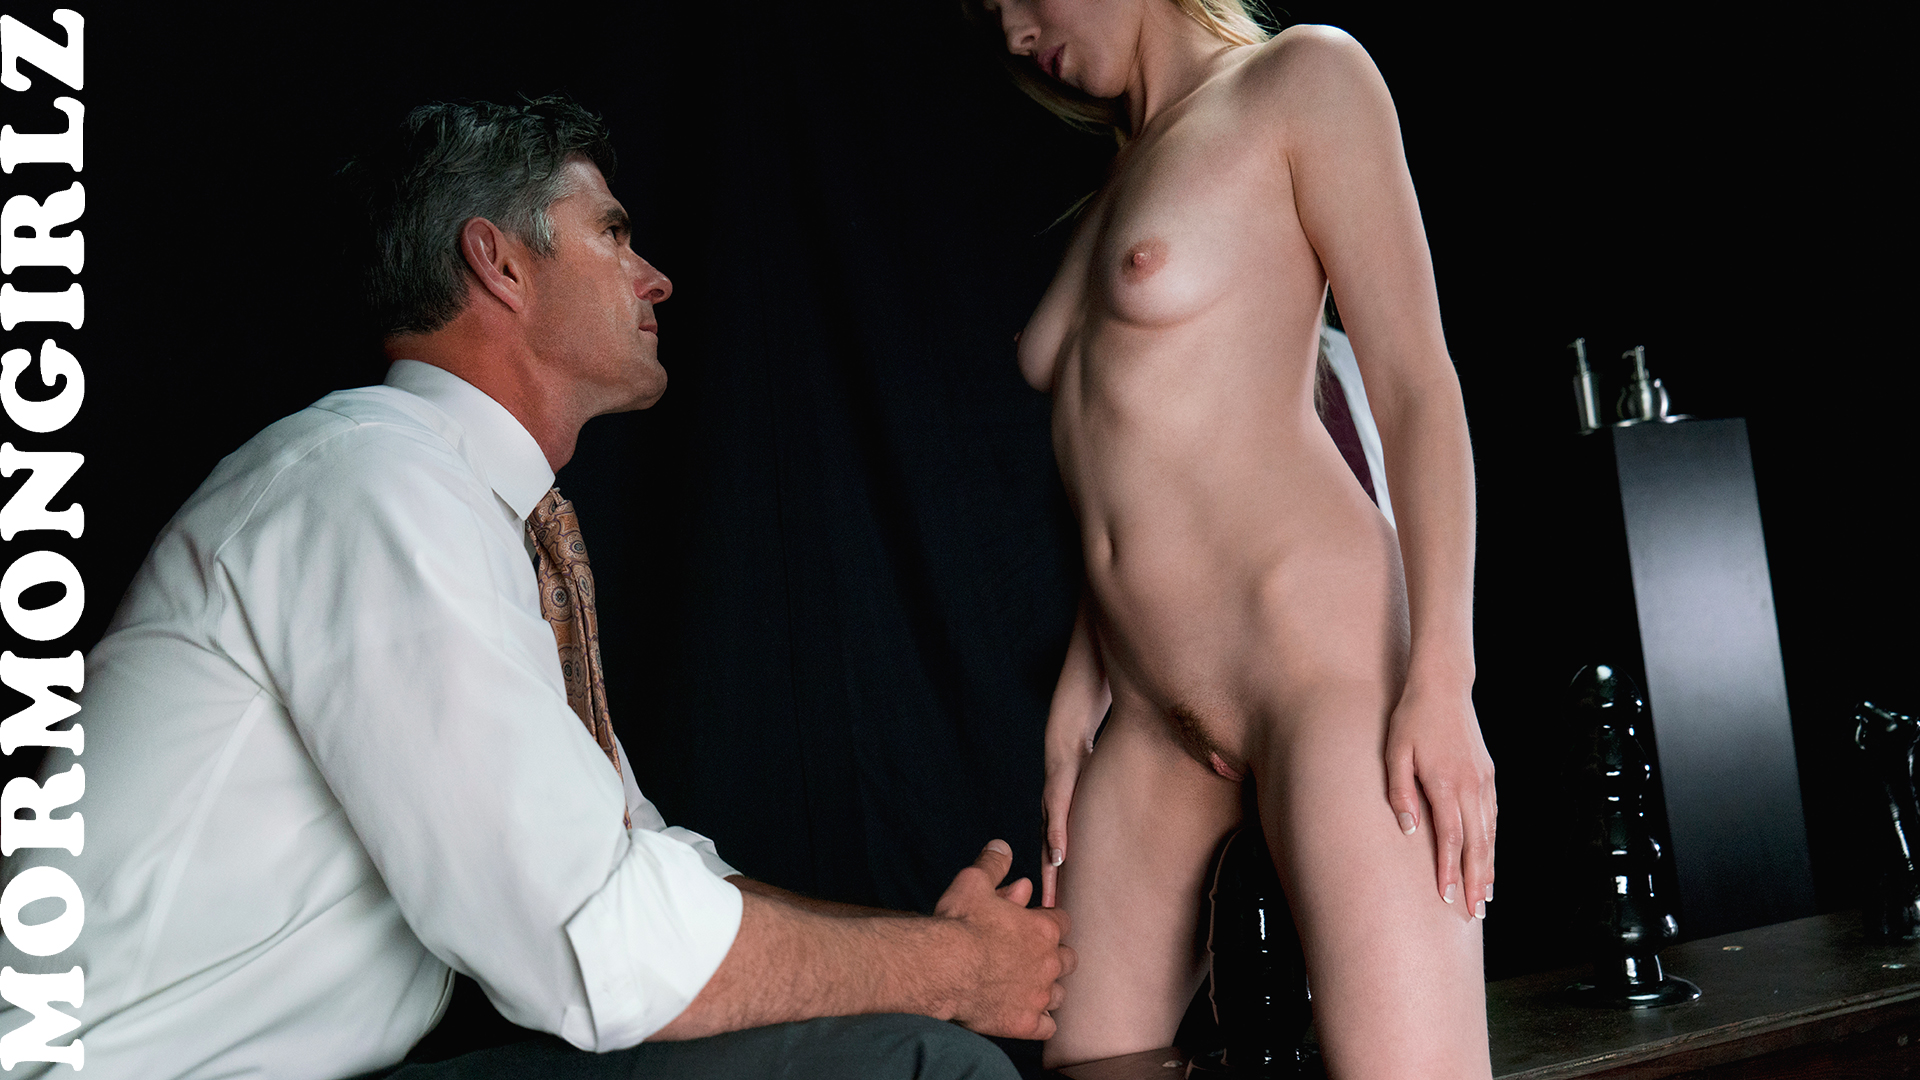 submissive Mormon Sister Jane experiencing a session with Father Joe #3